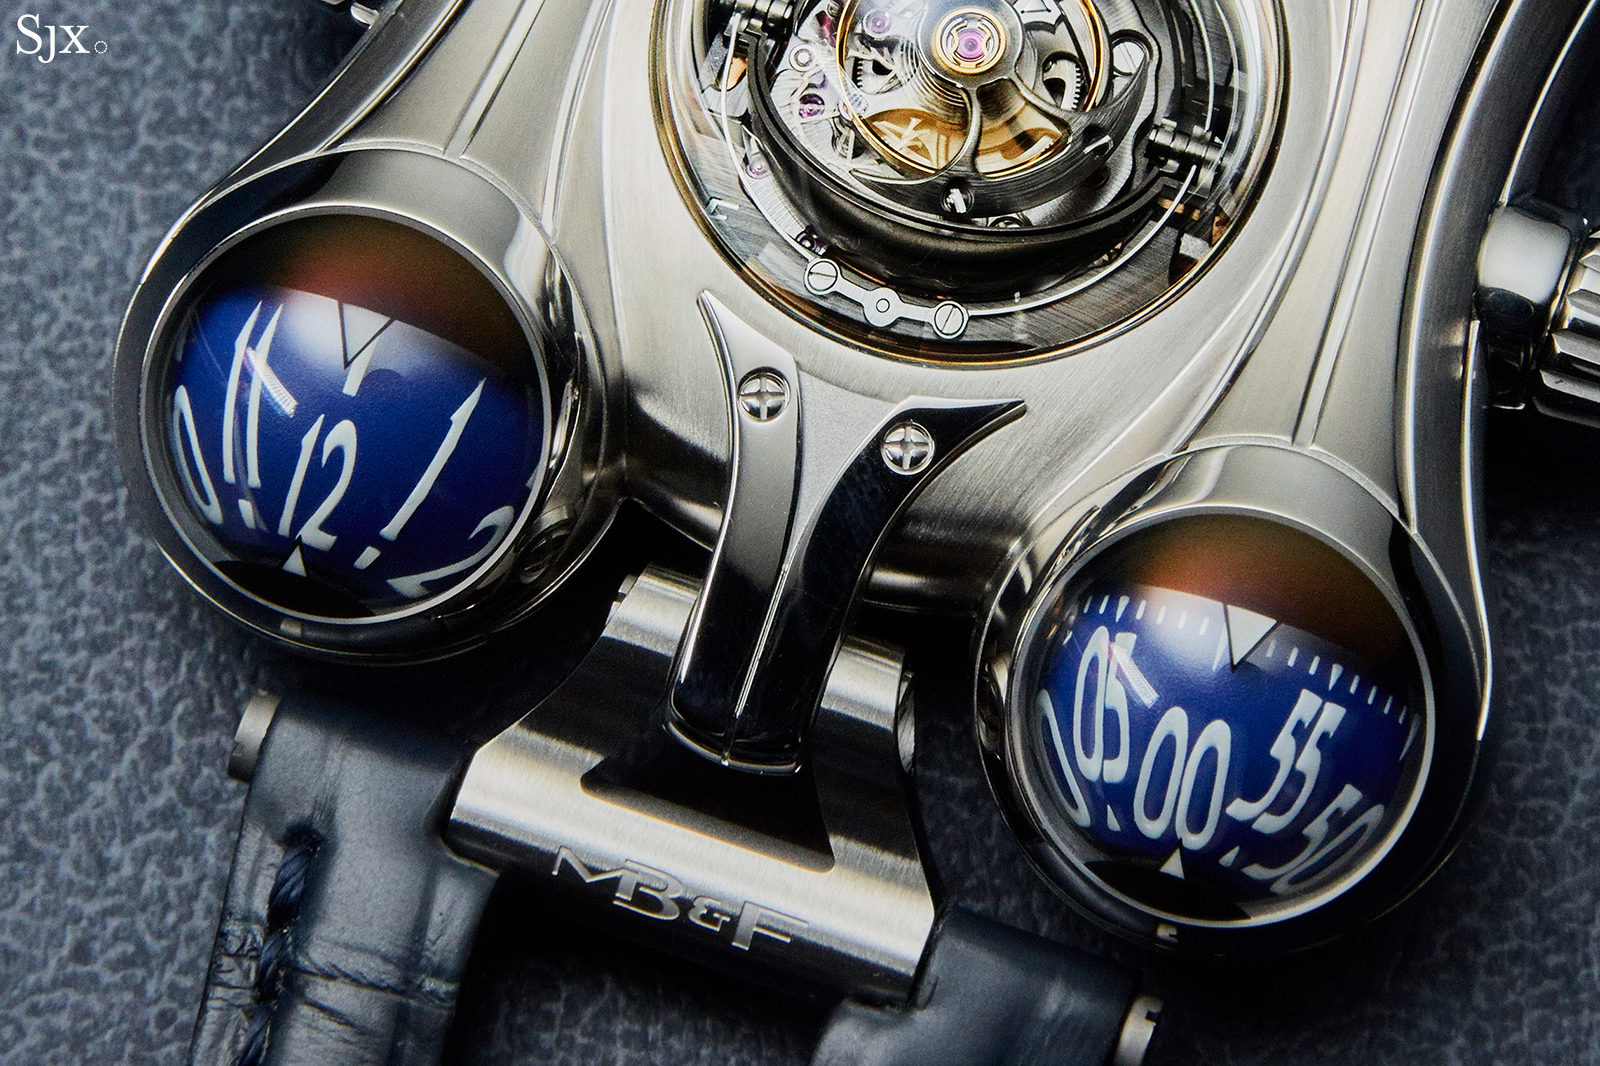 MB&F HM6 Final Edition time close up